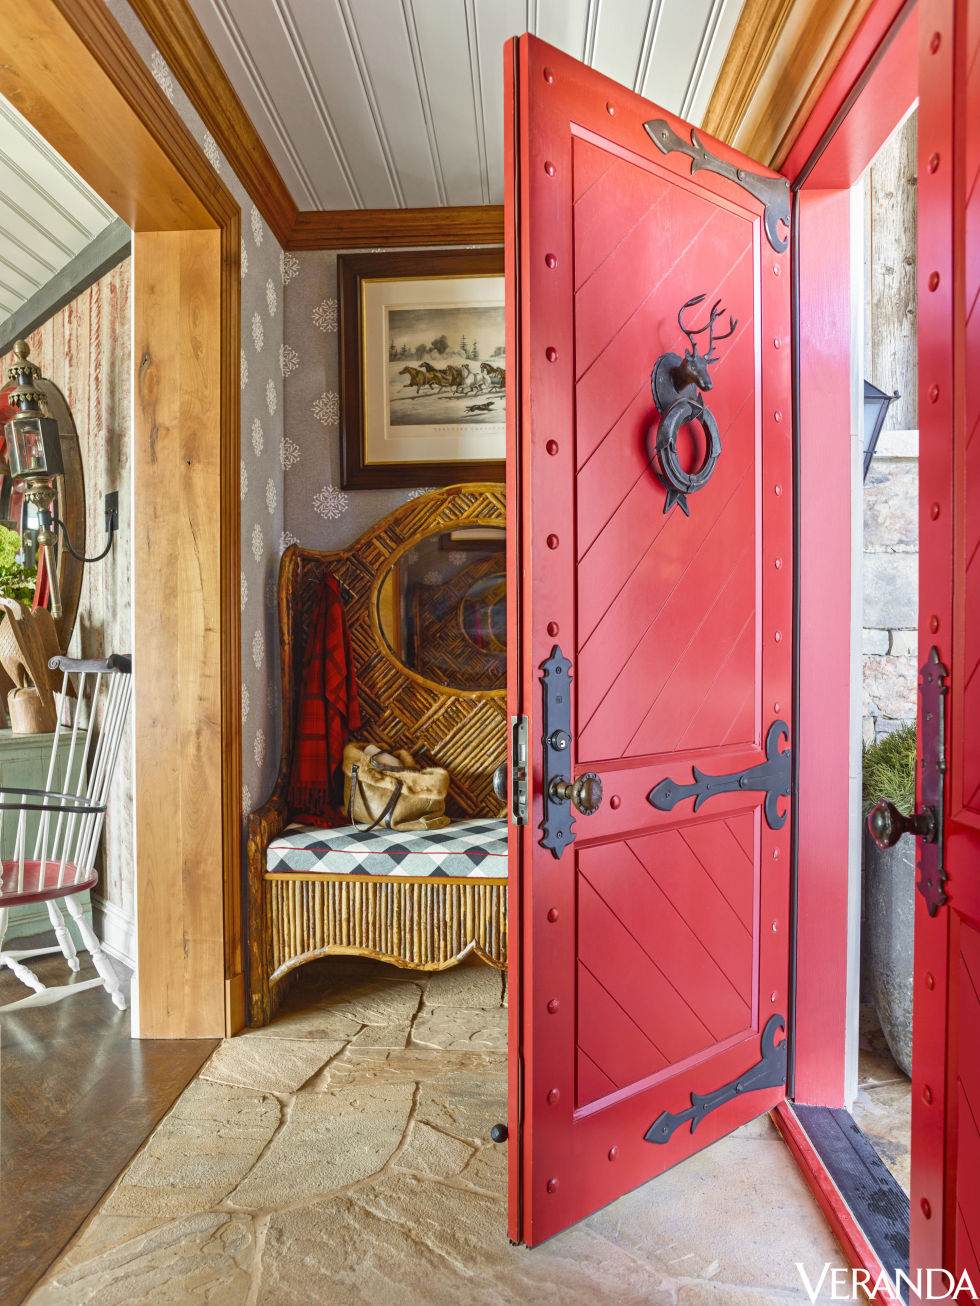 A detailed red door with a stage and wreath knocker sets the stage. This is NOT your typical sterile modern mega ski house. & Mad for Plaid Holiday Ski House \u2014 The Foo Dog Blog